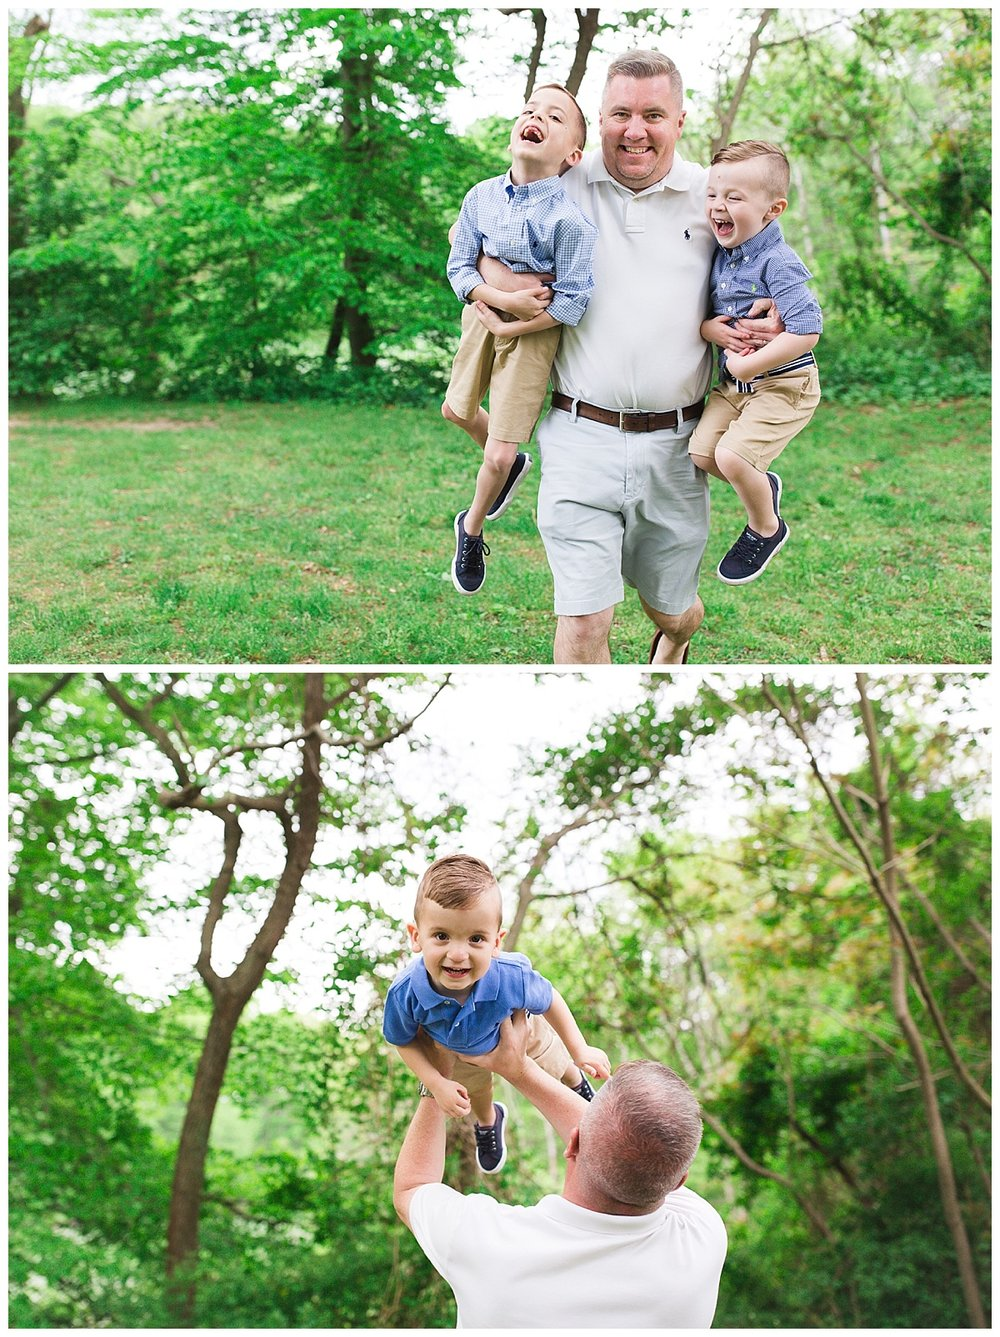 photographer for outdoor family photos